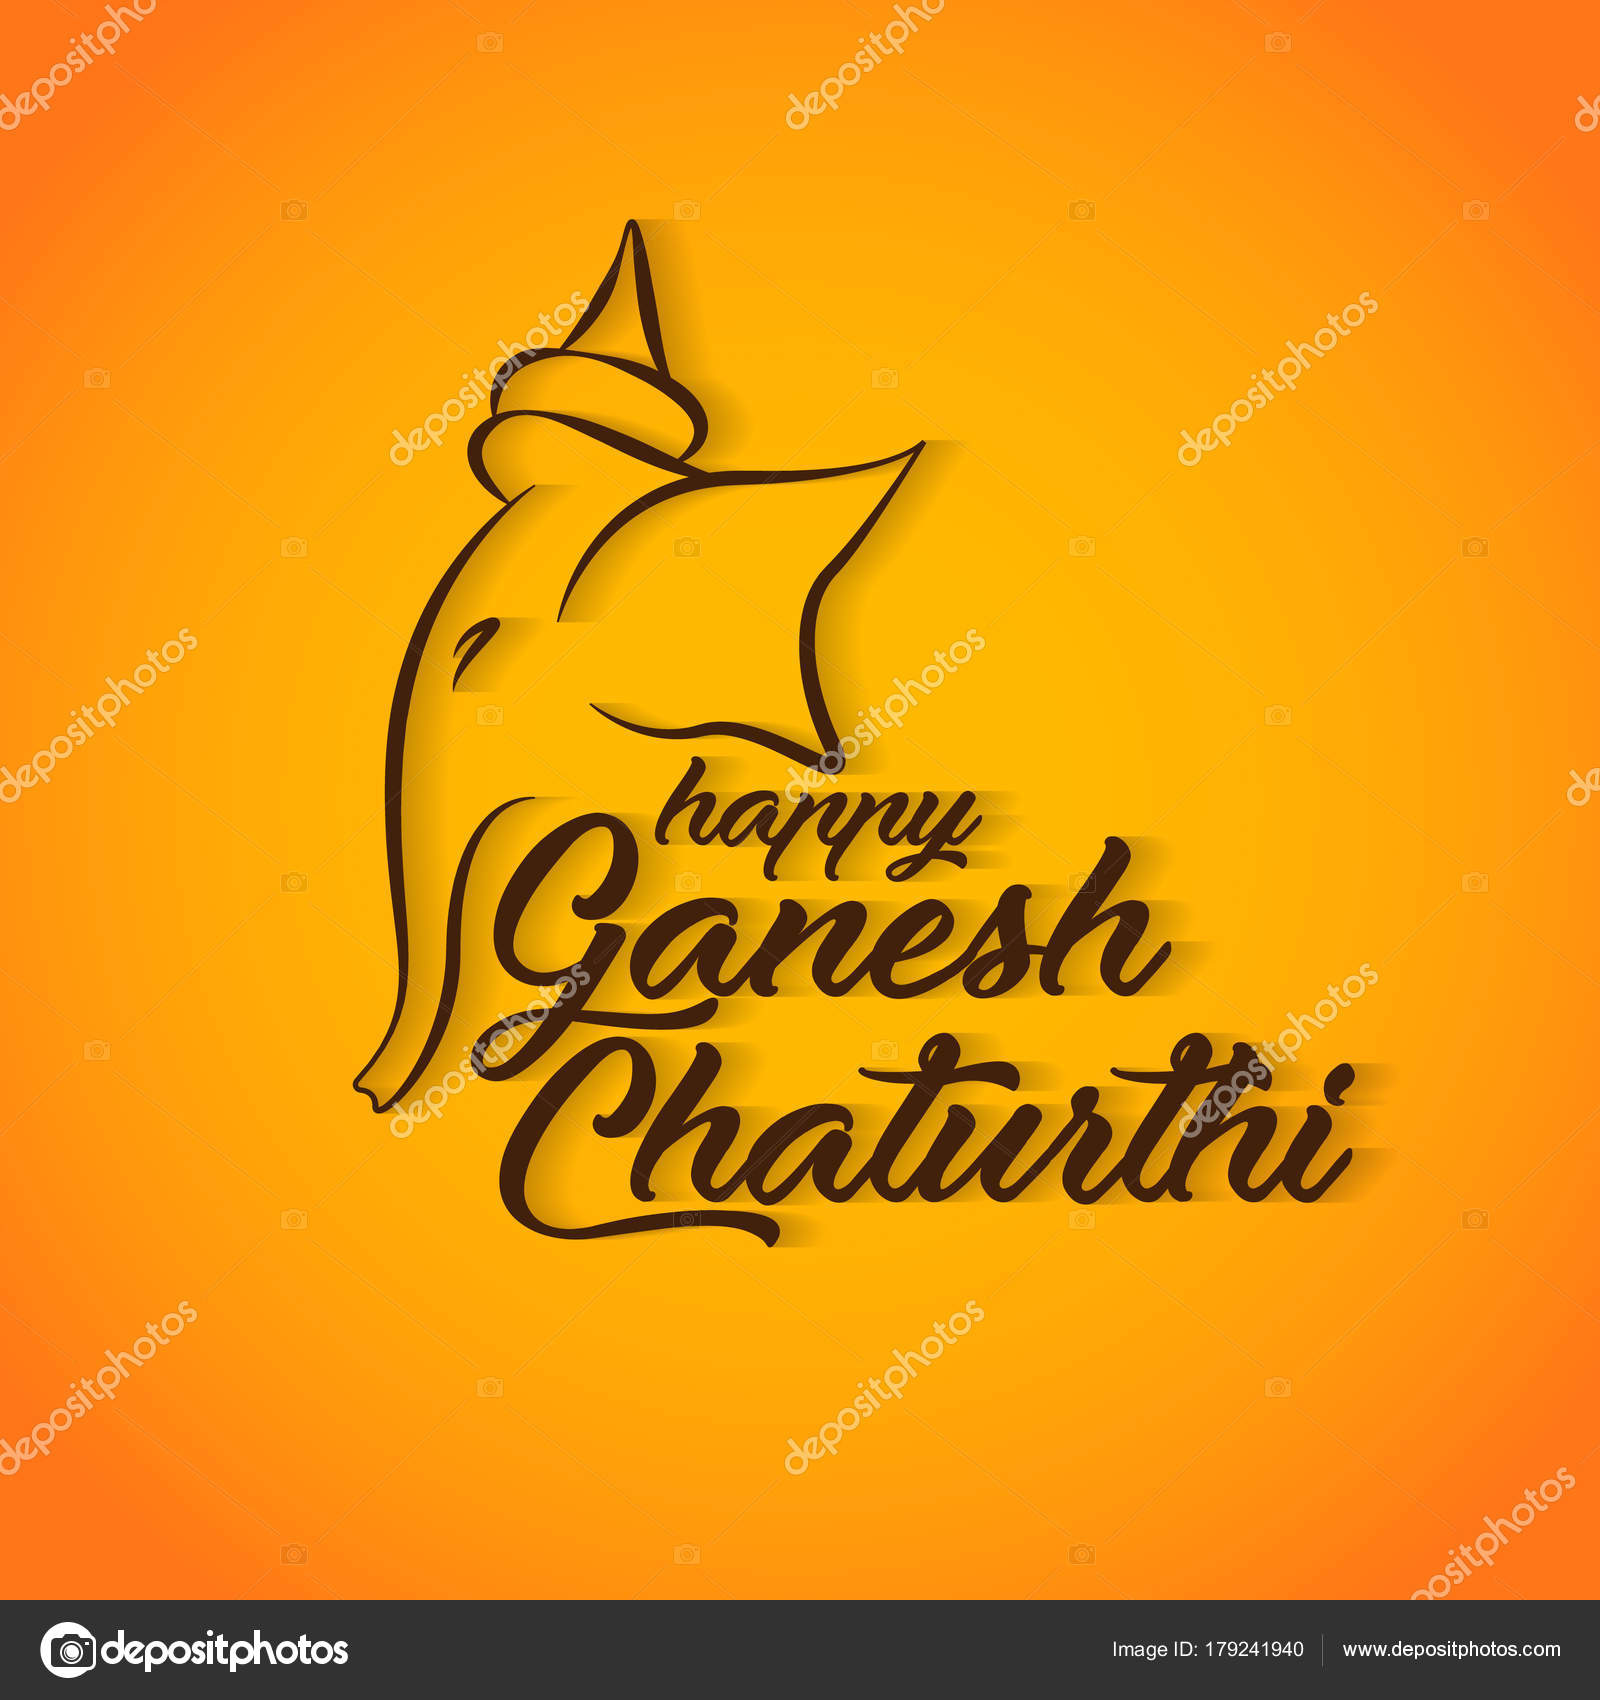 Happy ganesh chaturthi greeting card design stock vector happy ganesh chaturthi greeting card design stock vector m4hsunfo